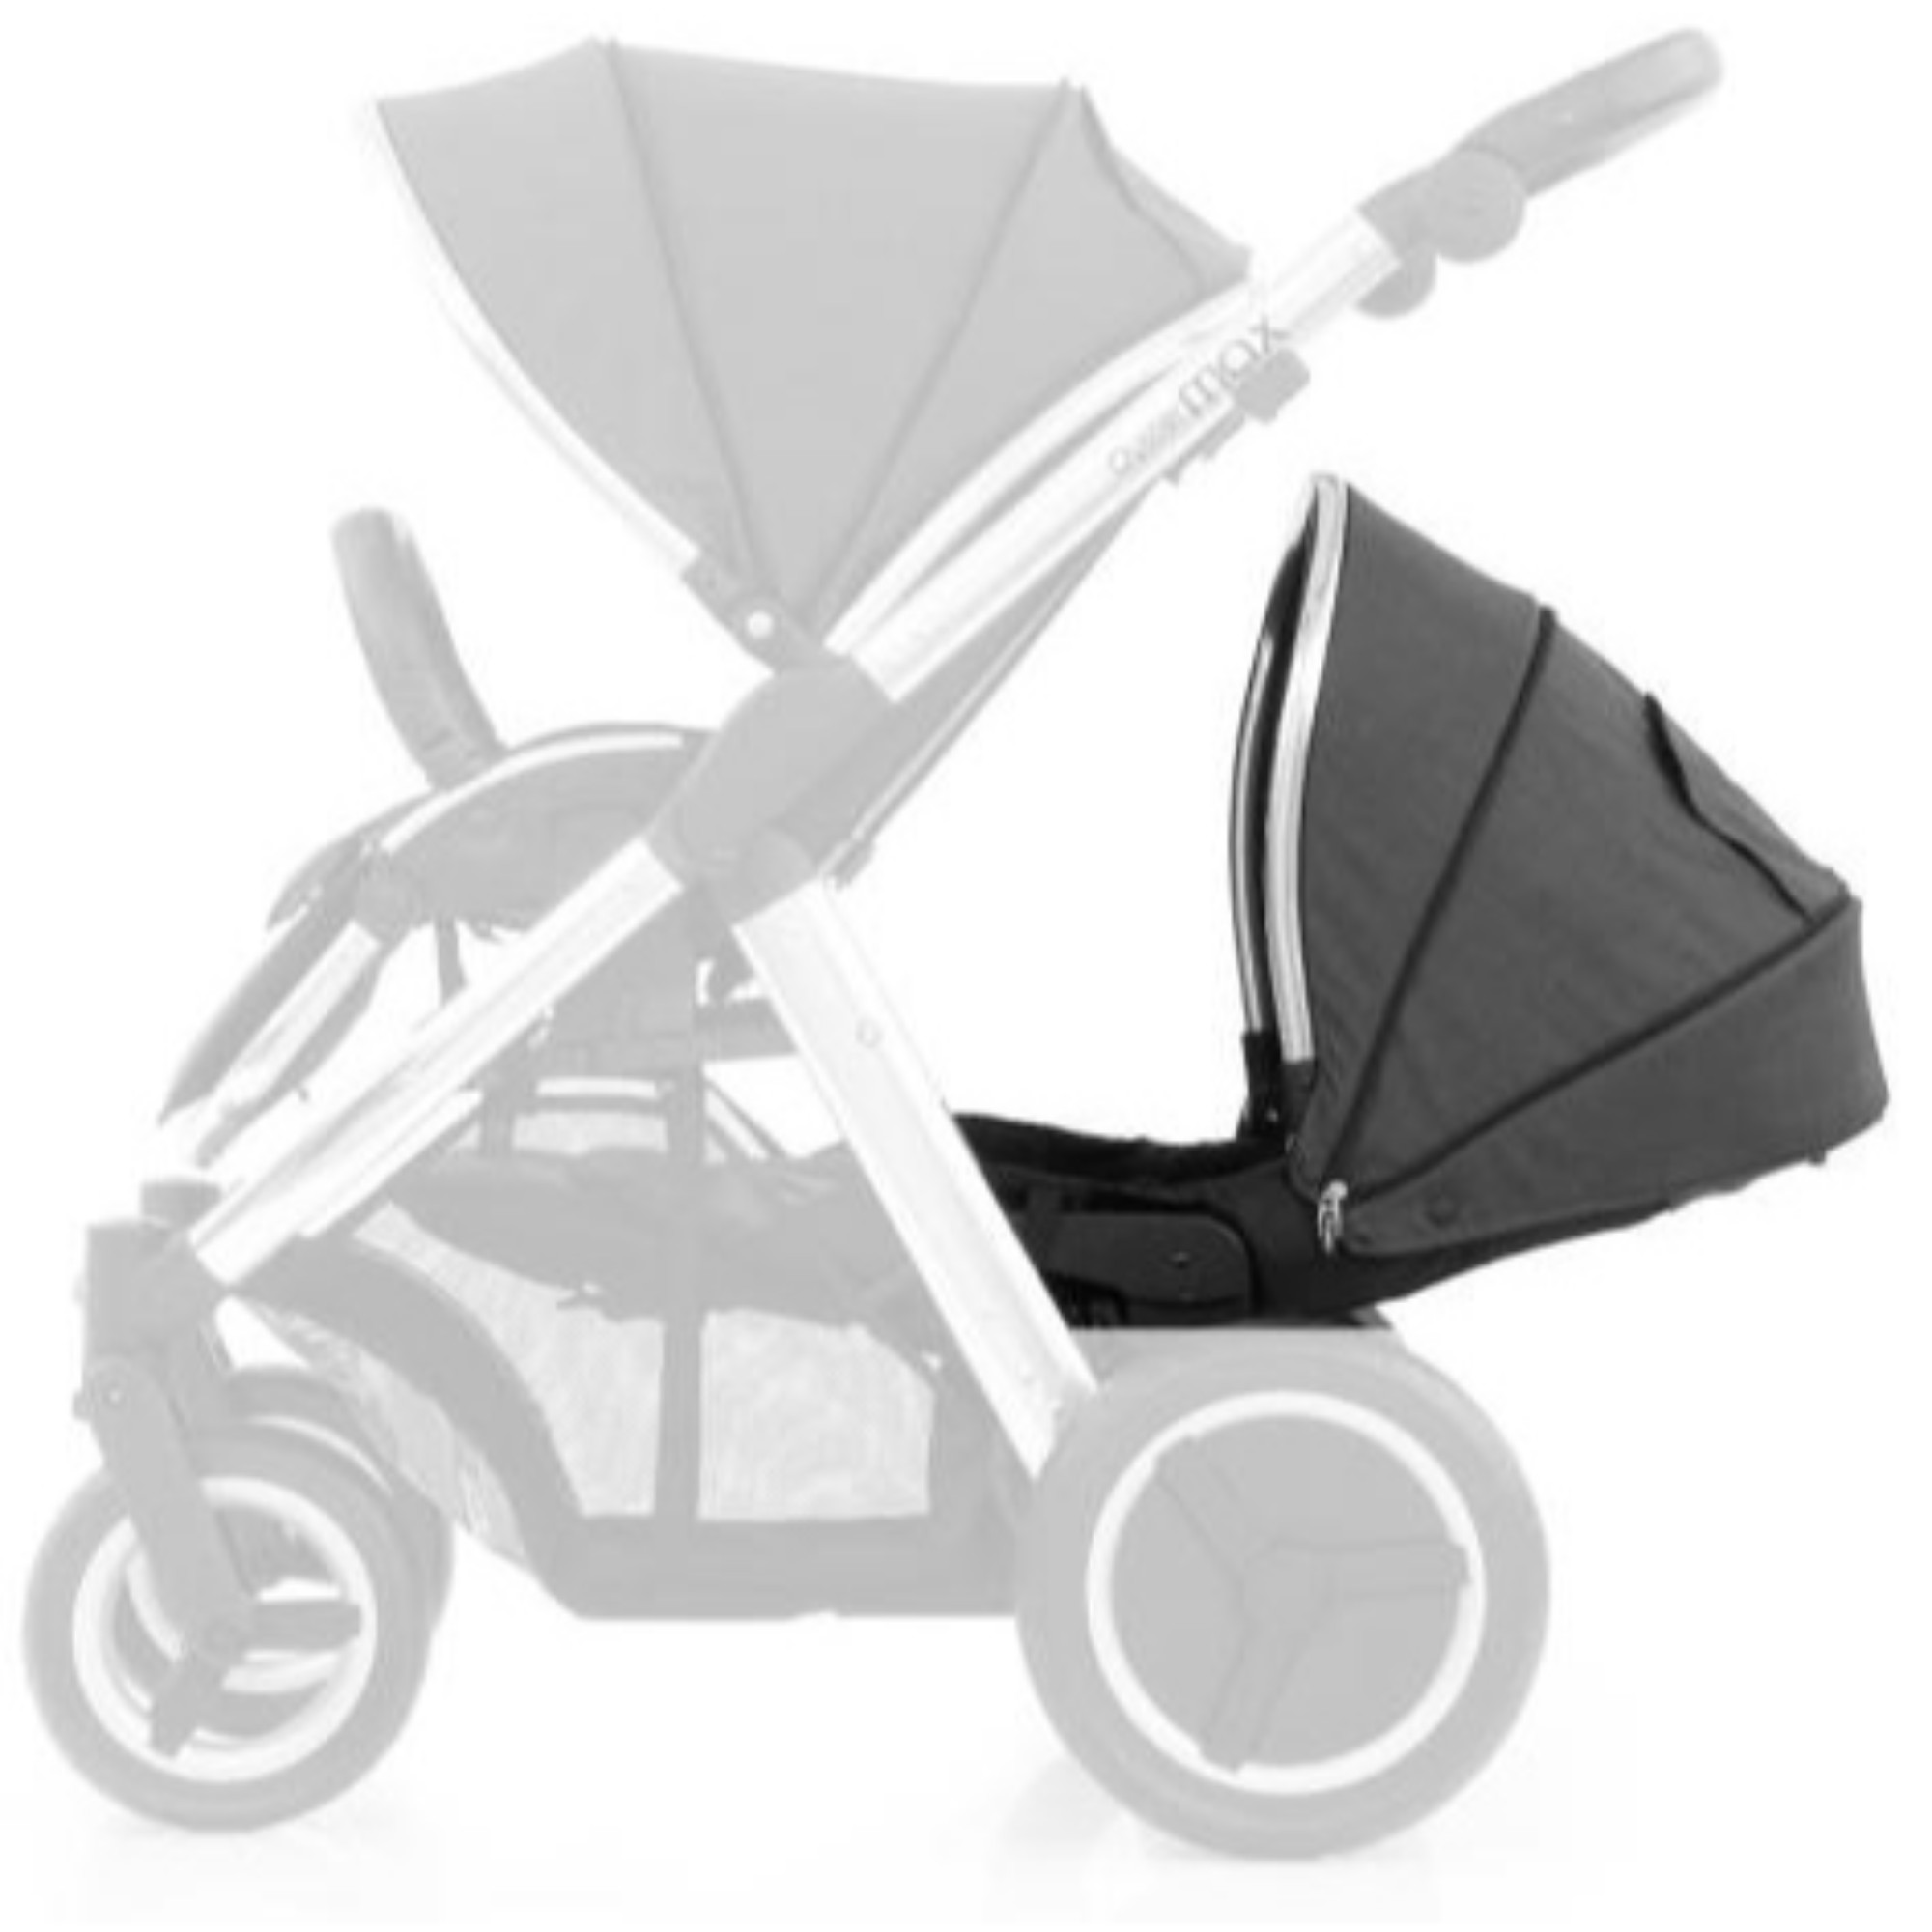 Oyster Pram Purple Details About Babystyle Oyster Max Lie Flat Tandem Colour Pack Tungsten Grey